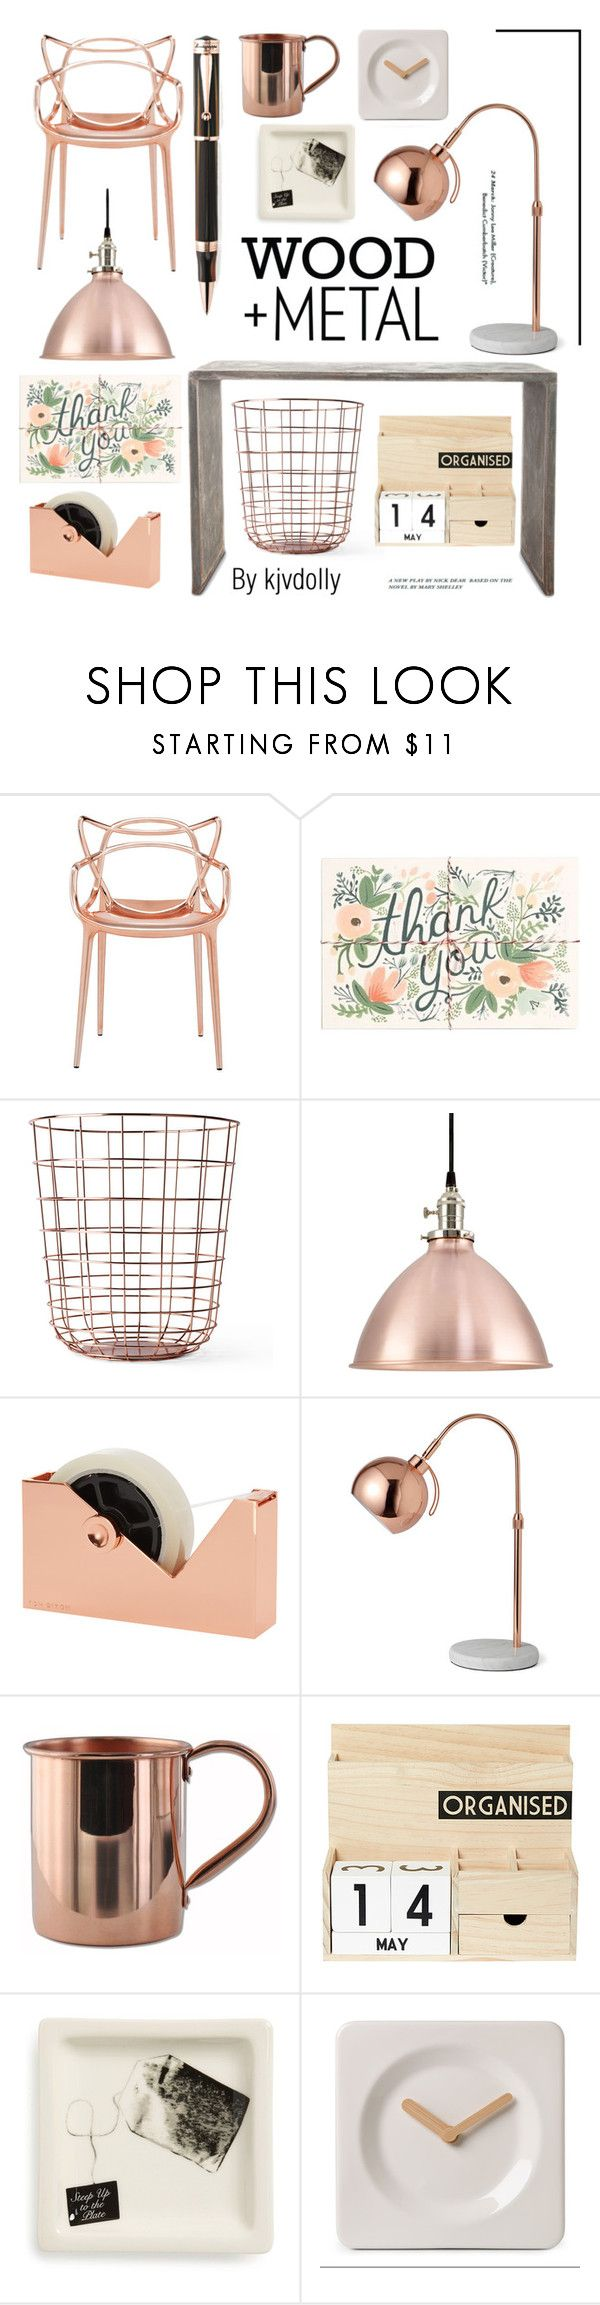 """Copper and Wood office"" by kjvdolly ❤ liked on Polyvore featuring interior, interiors, interior design, home, home decor, interior decorating, Kartell, Rifle Paper Co, Menu and Tom Dixon"